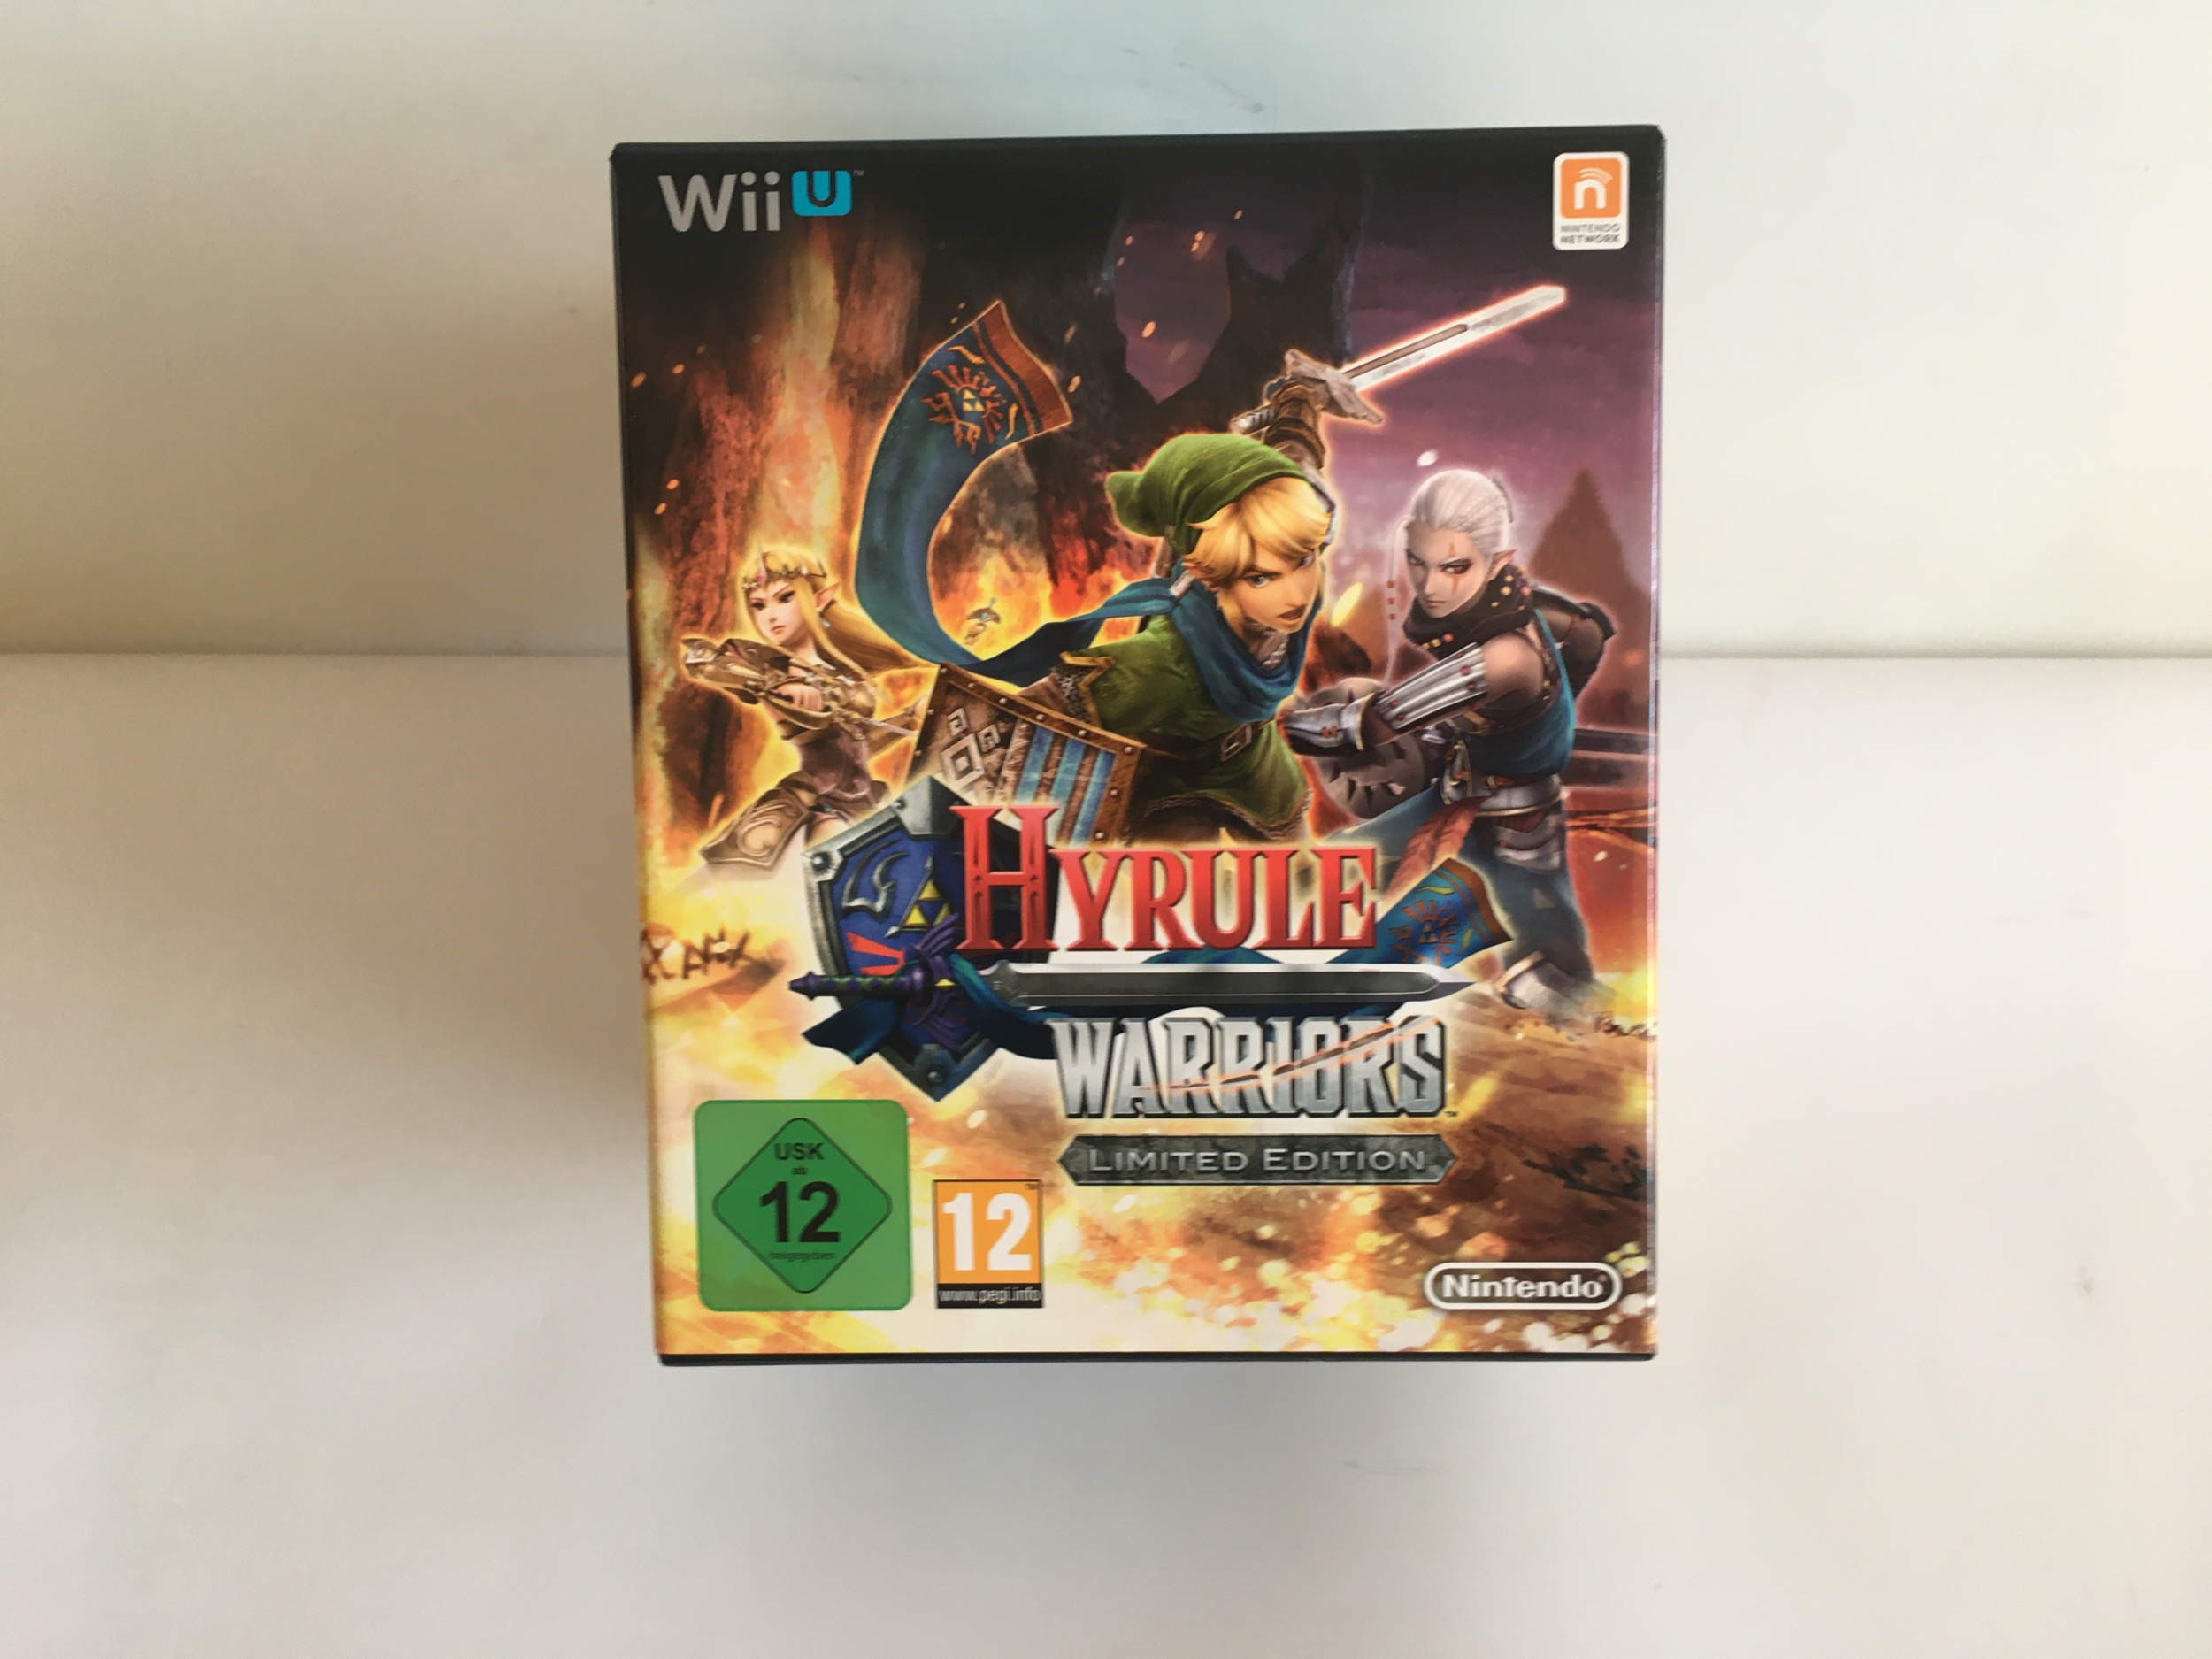 Hyrule Warriors Limited Edition Neuf Wii U